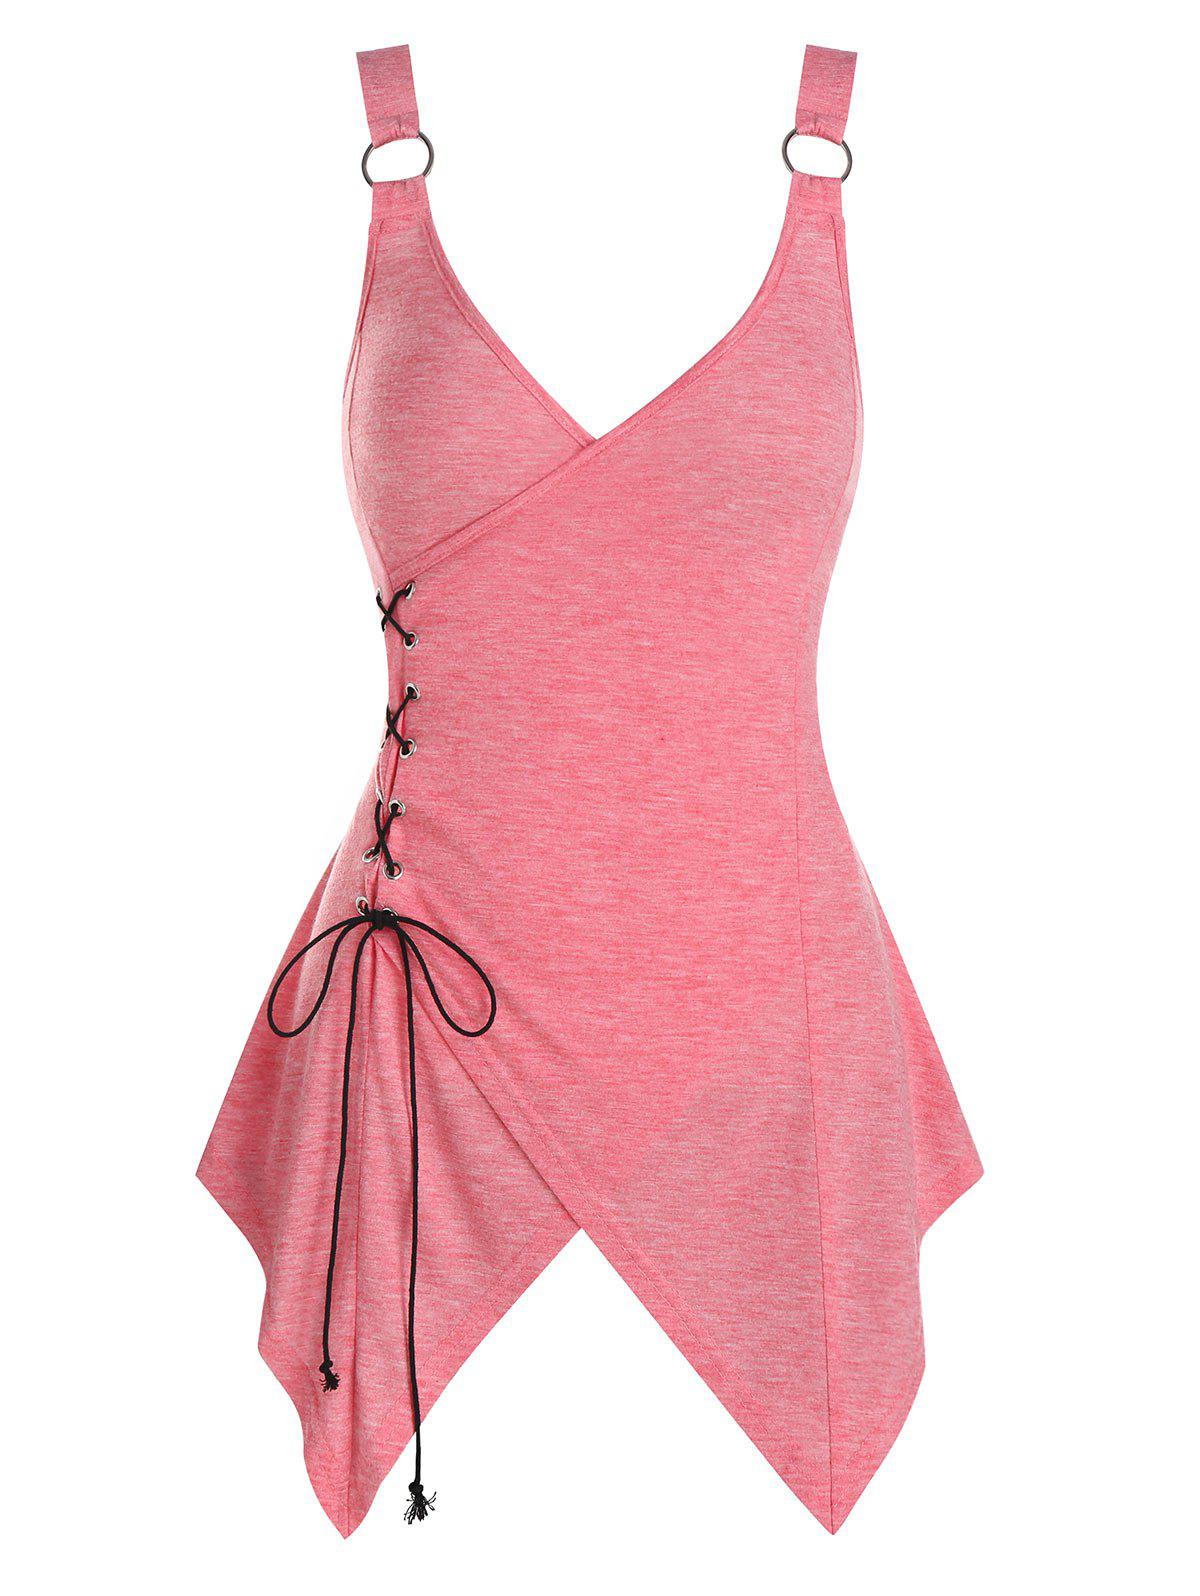 Discount Asymmetric Lace-up Heathered Surplice Tank Top